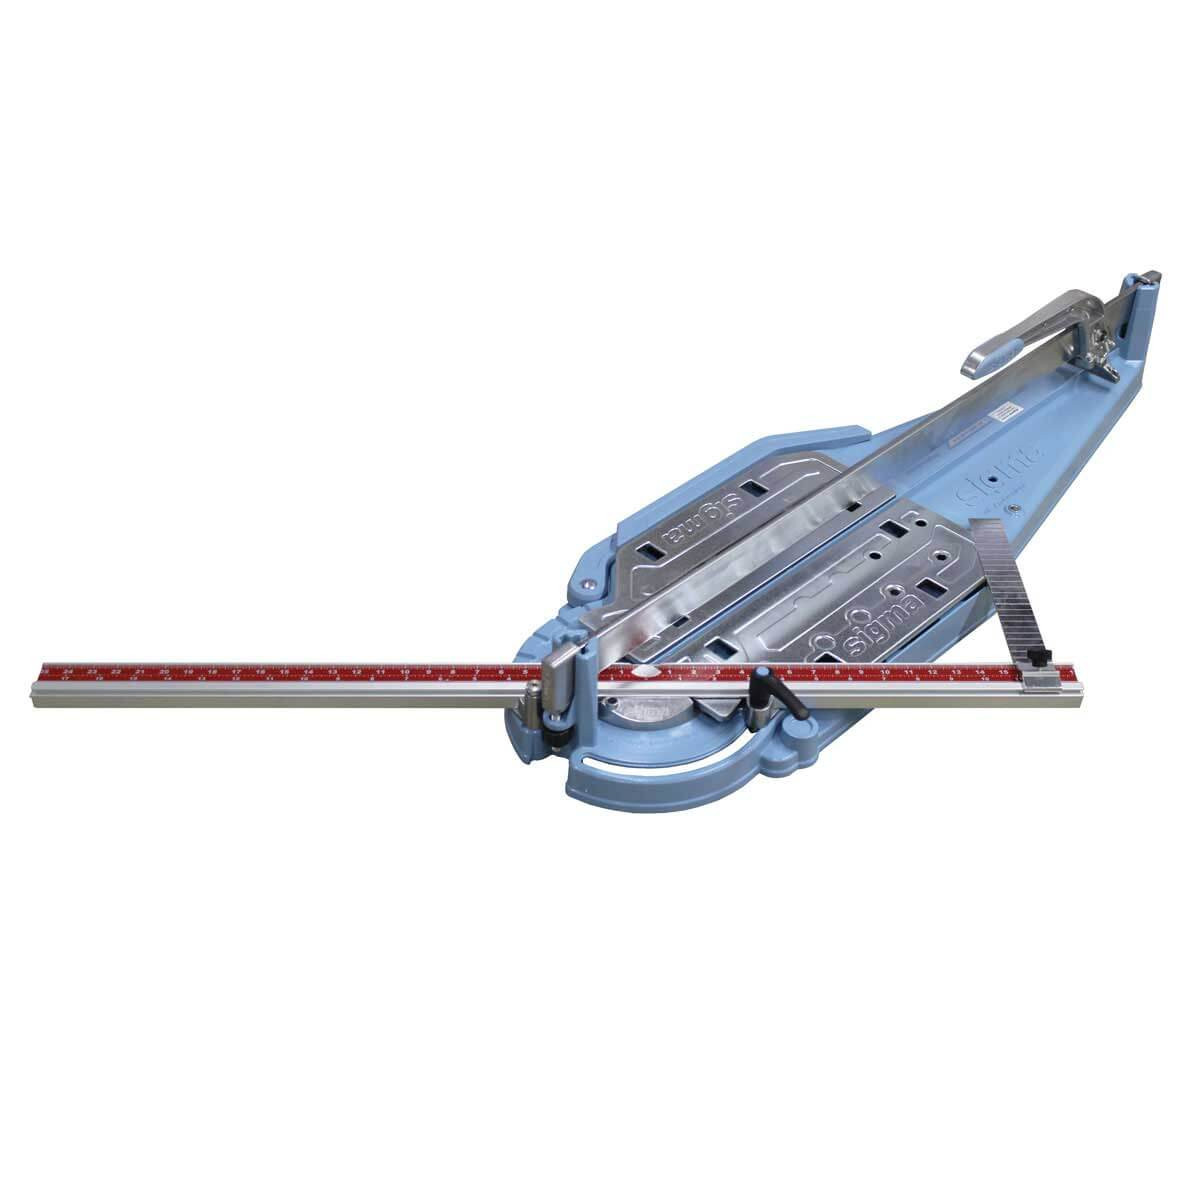 Sigma Max Tile Cutter Sigma Tile Cutter Contractors Direct